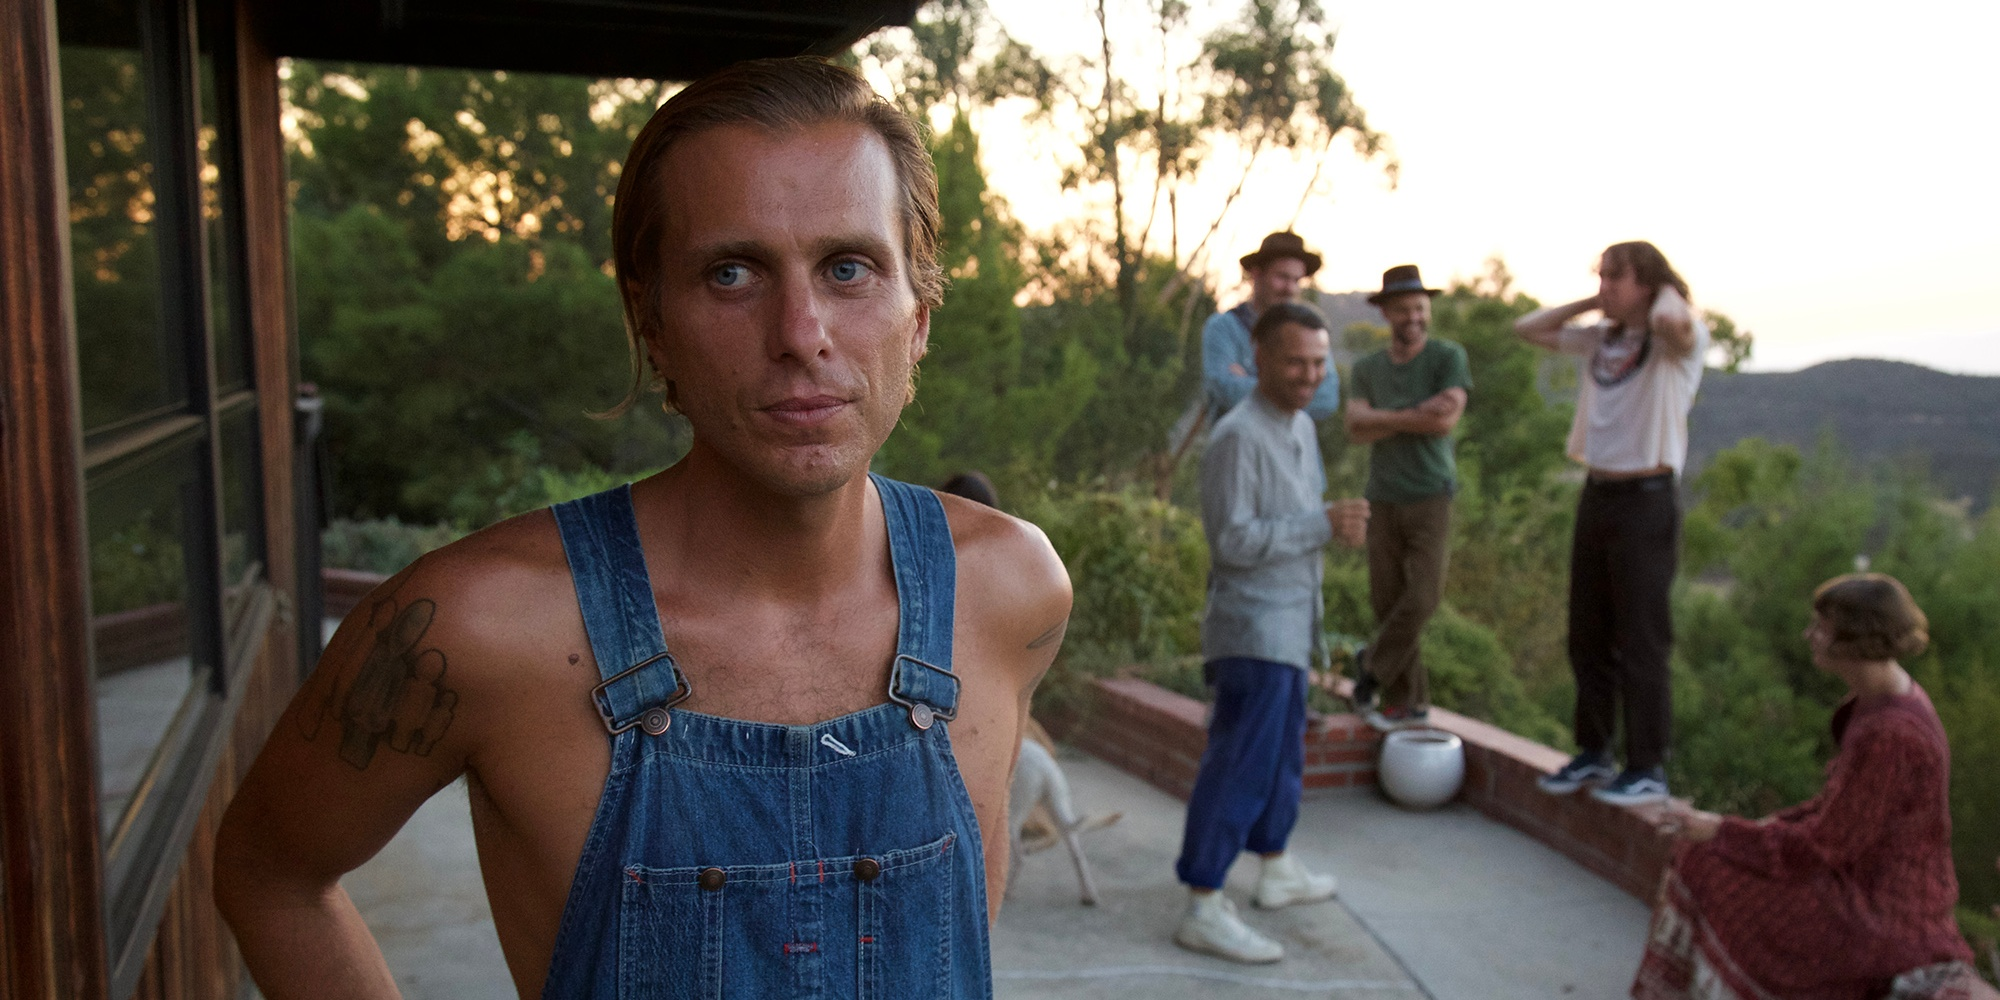 AWOLNATION's Aaron Bruno on their latest record, recorded in a studio built from scratch